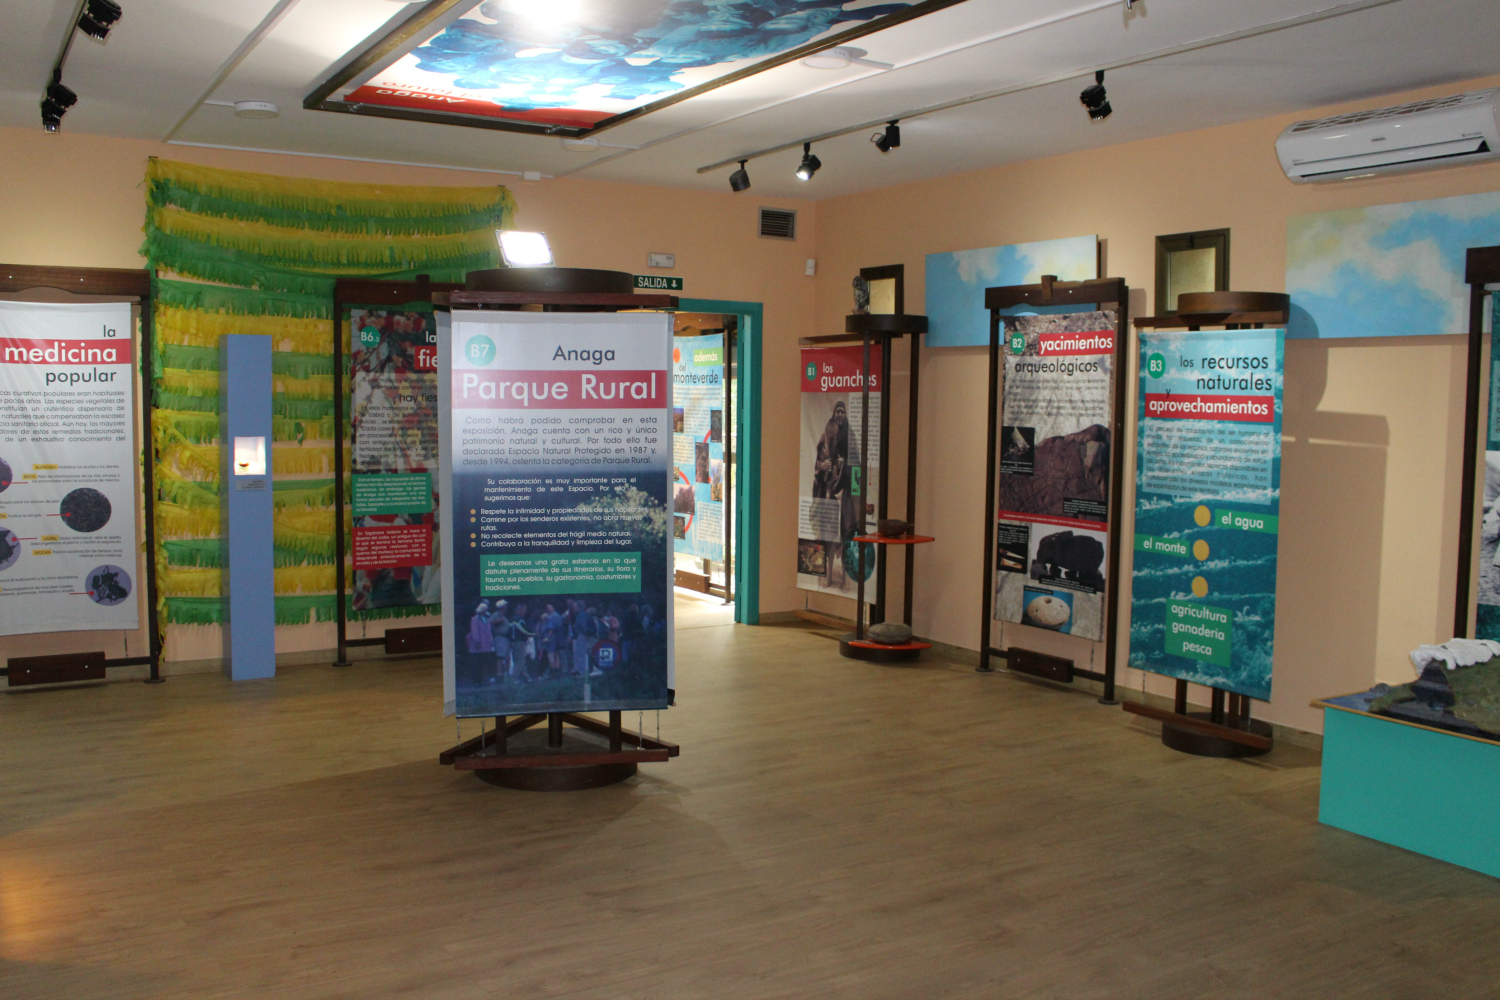 Visitor's center in Anaga, where you can collect information about the park and for your excursion